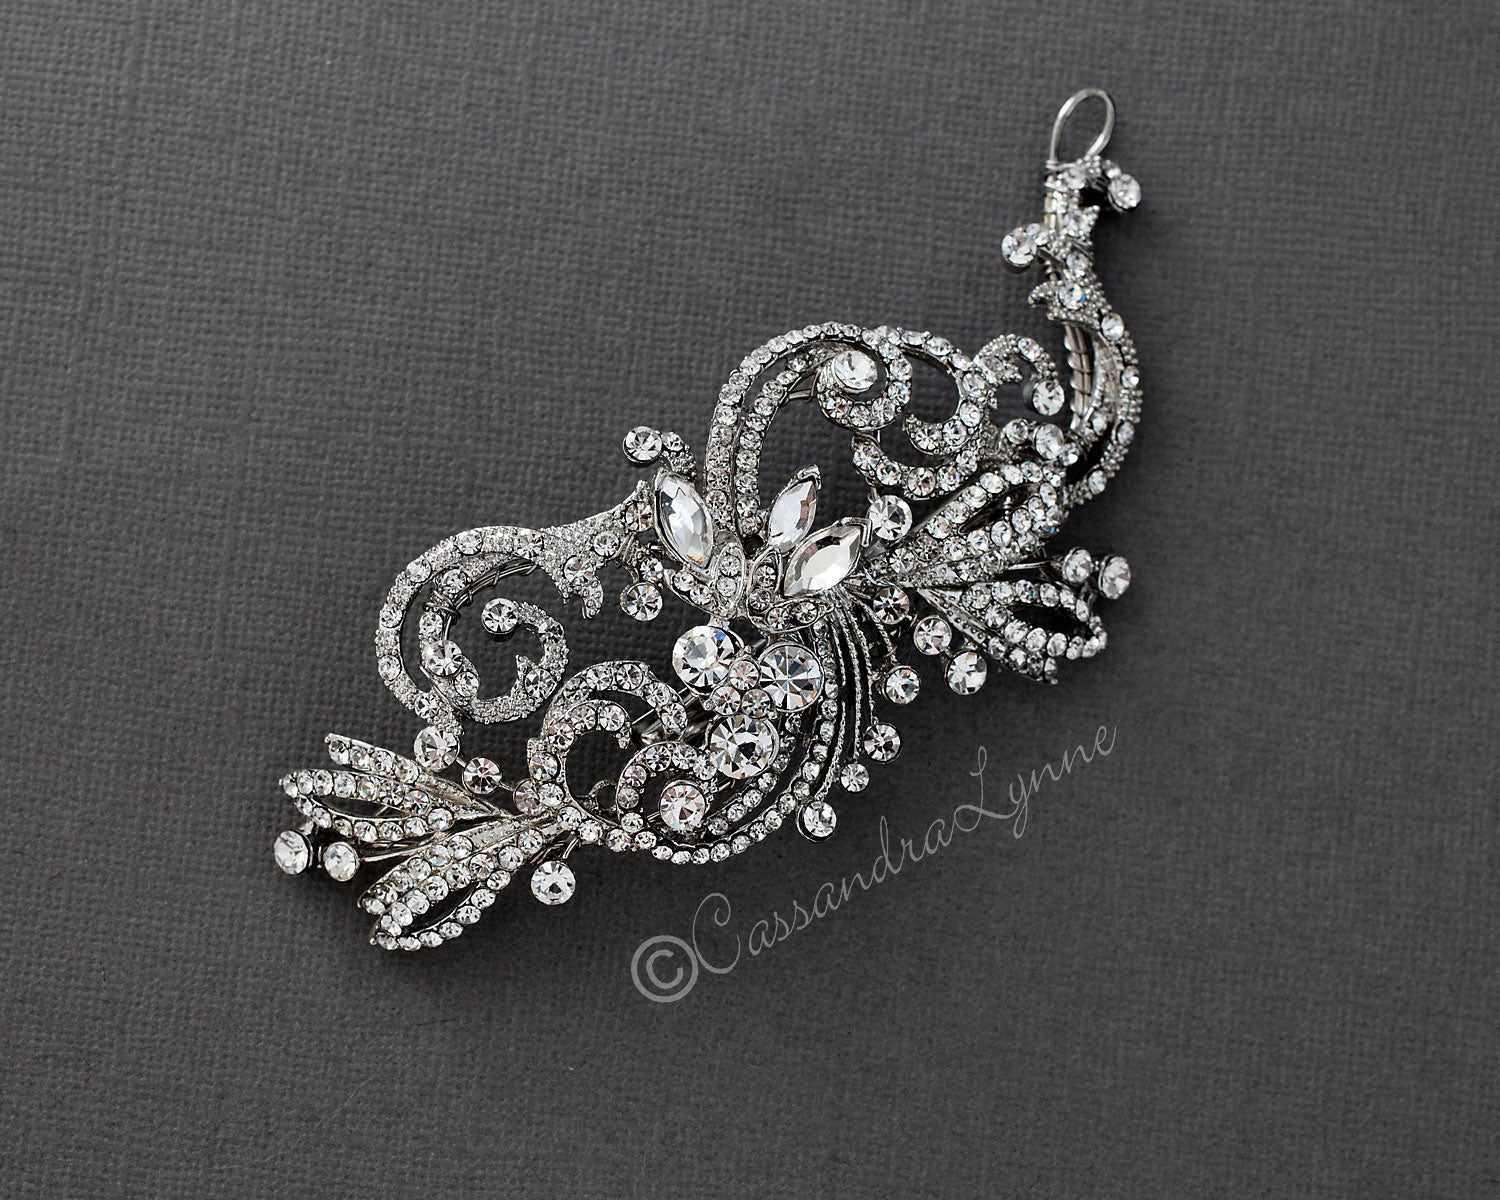 Dark Silver Wedding Hair Clip of Scrolls and Marquise Jewels